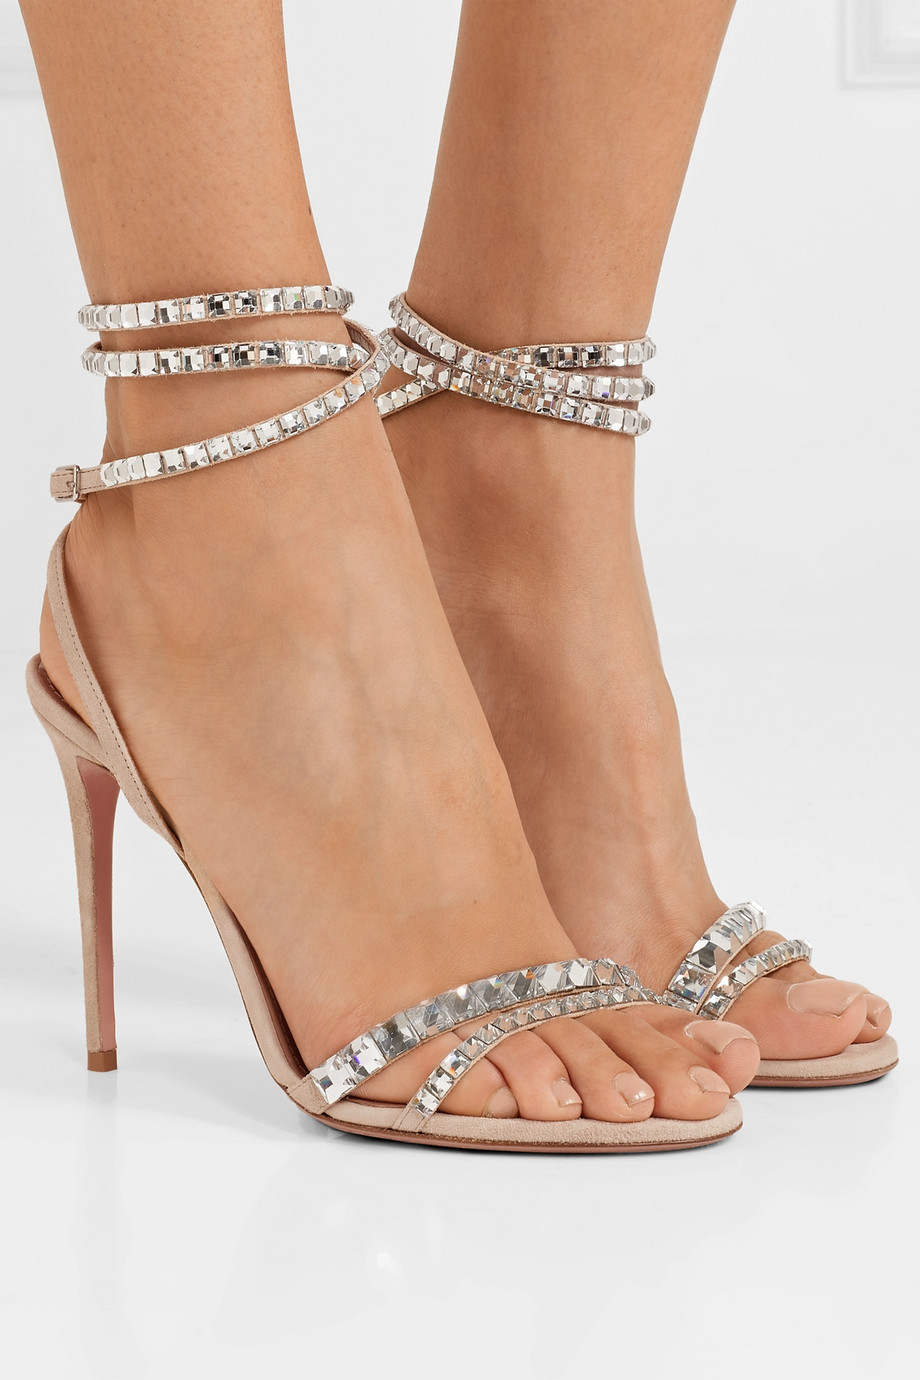 Aquazzura Sandales en daim à cristaux So Vera 105